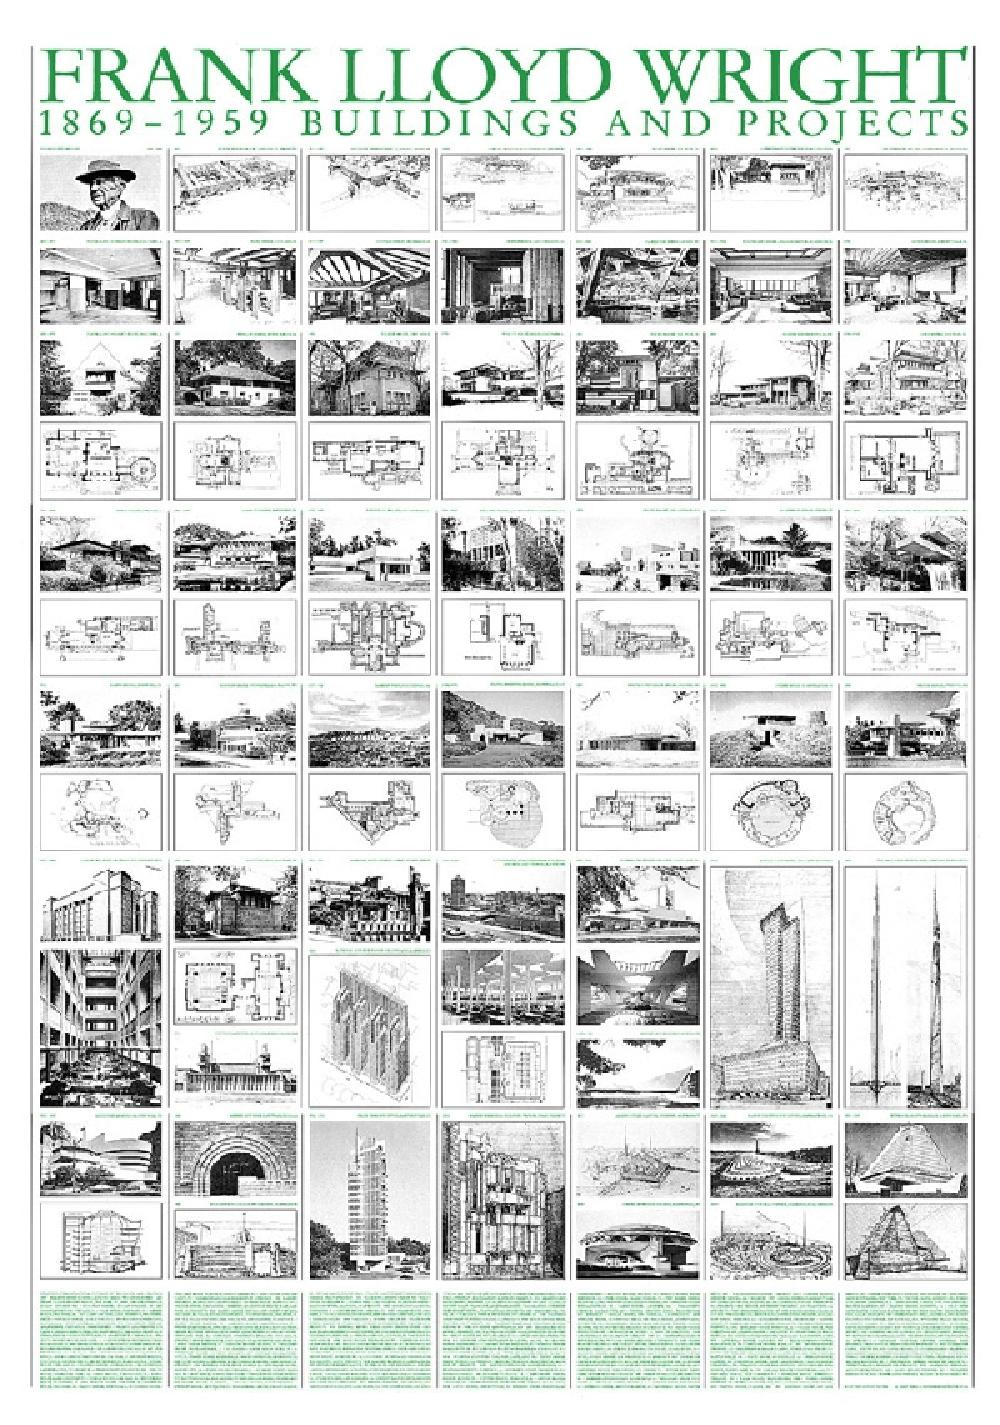 Frank Lloyd Wright - Buildings and Projects (Affiche)